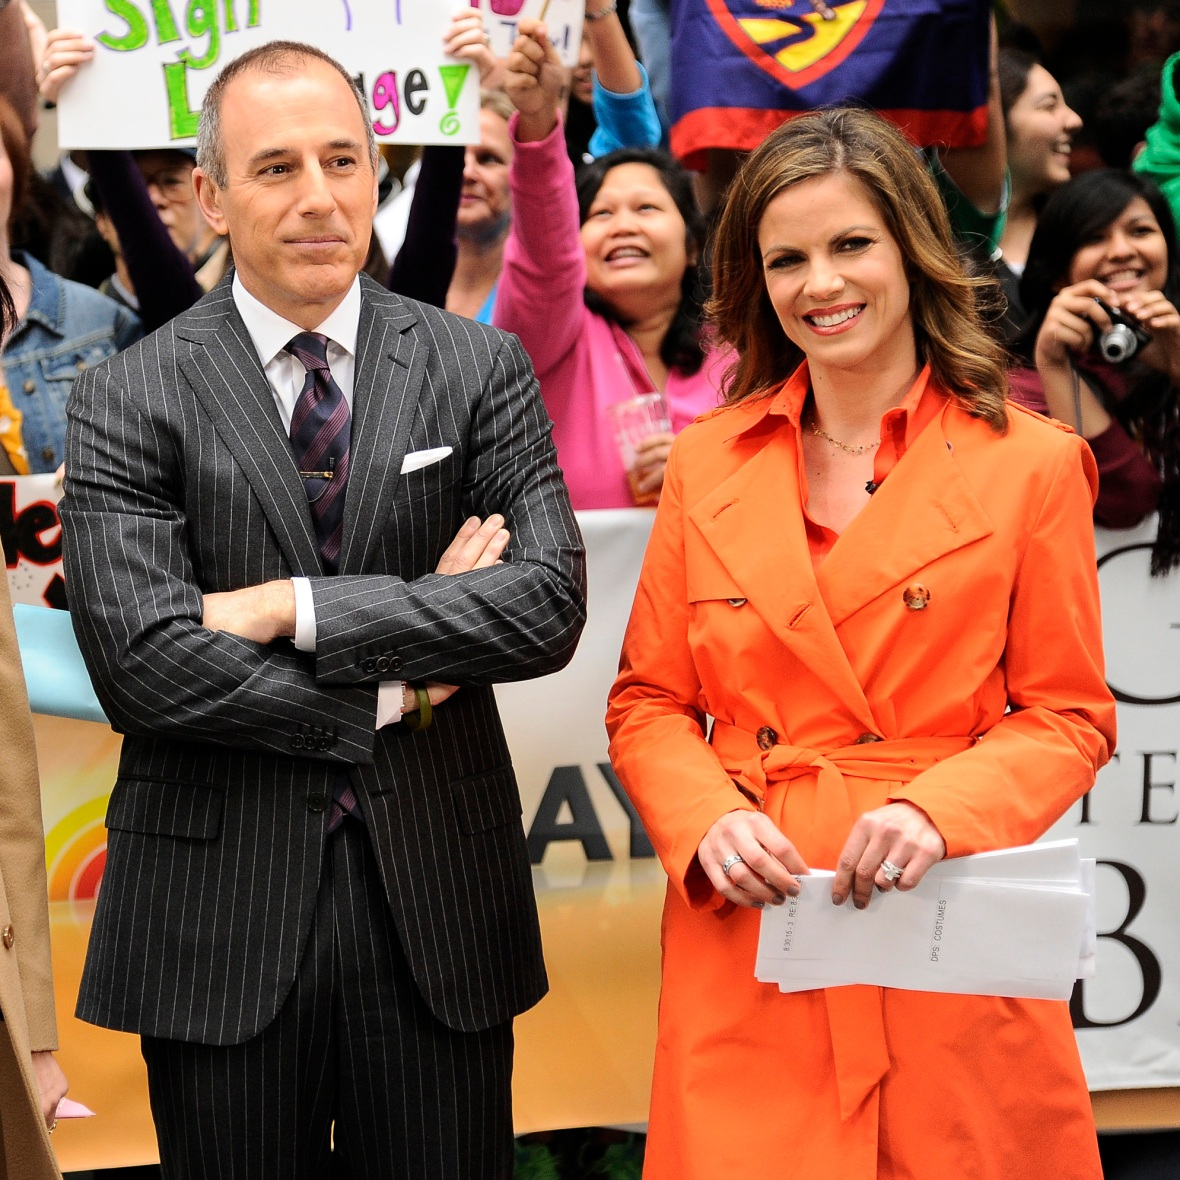 matt lauer natalie morales getty images